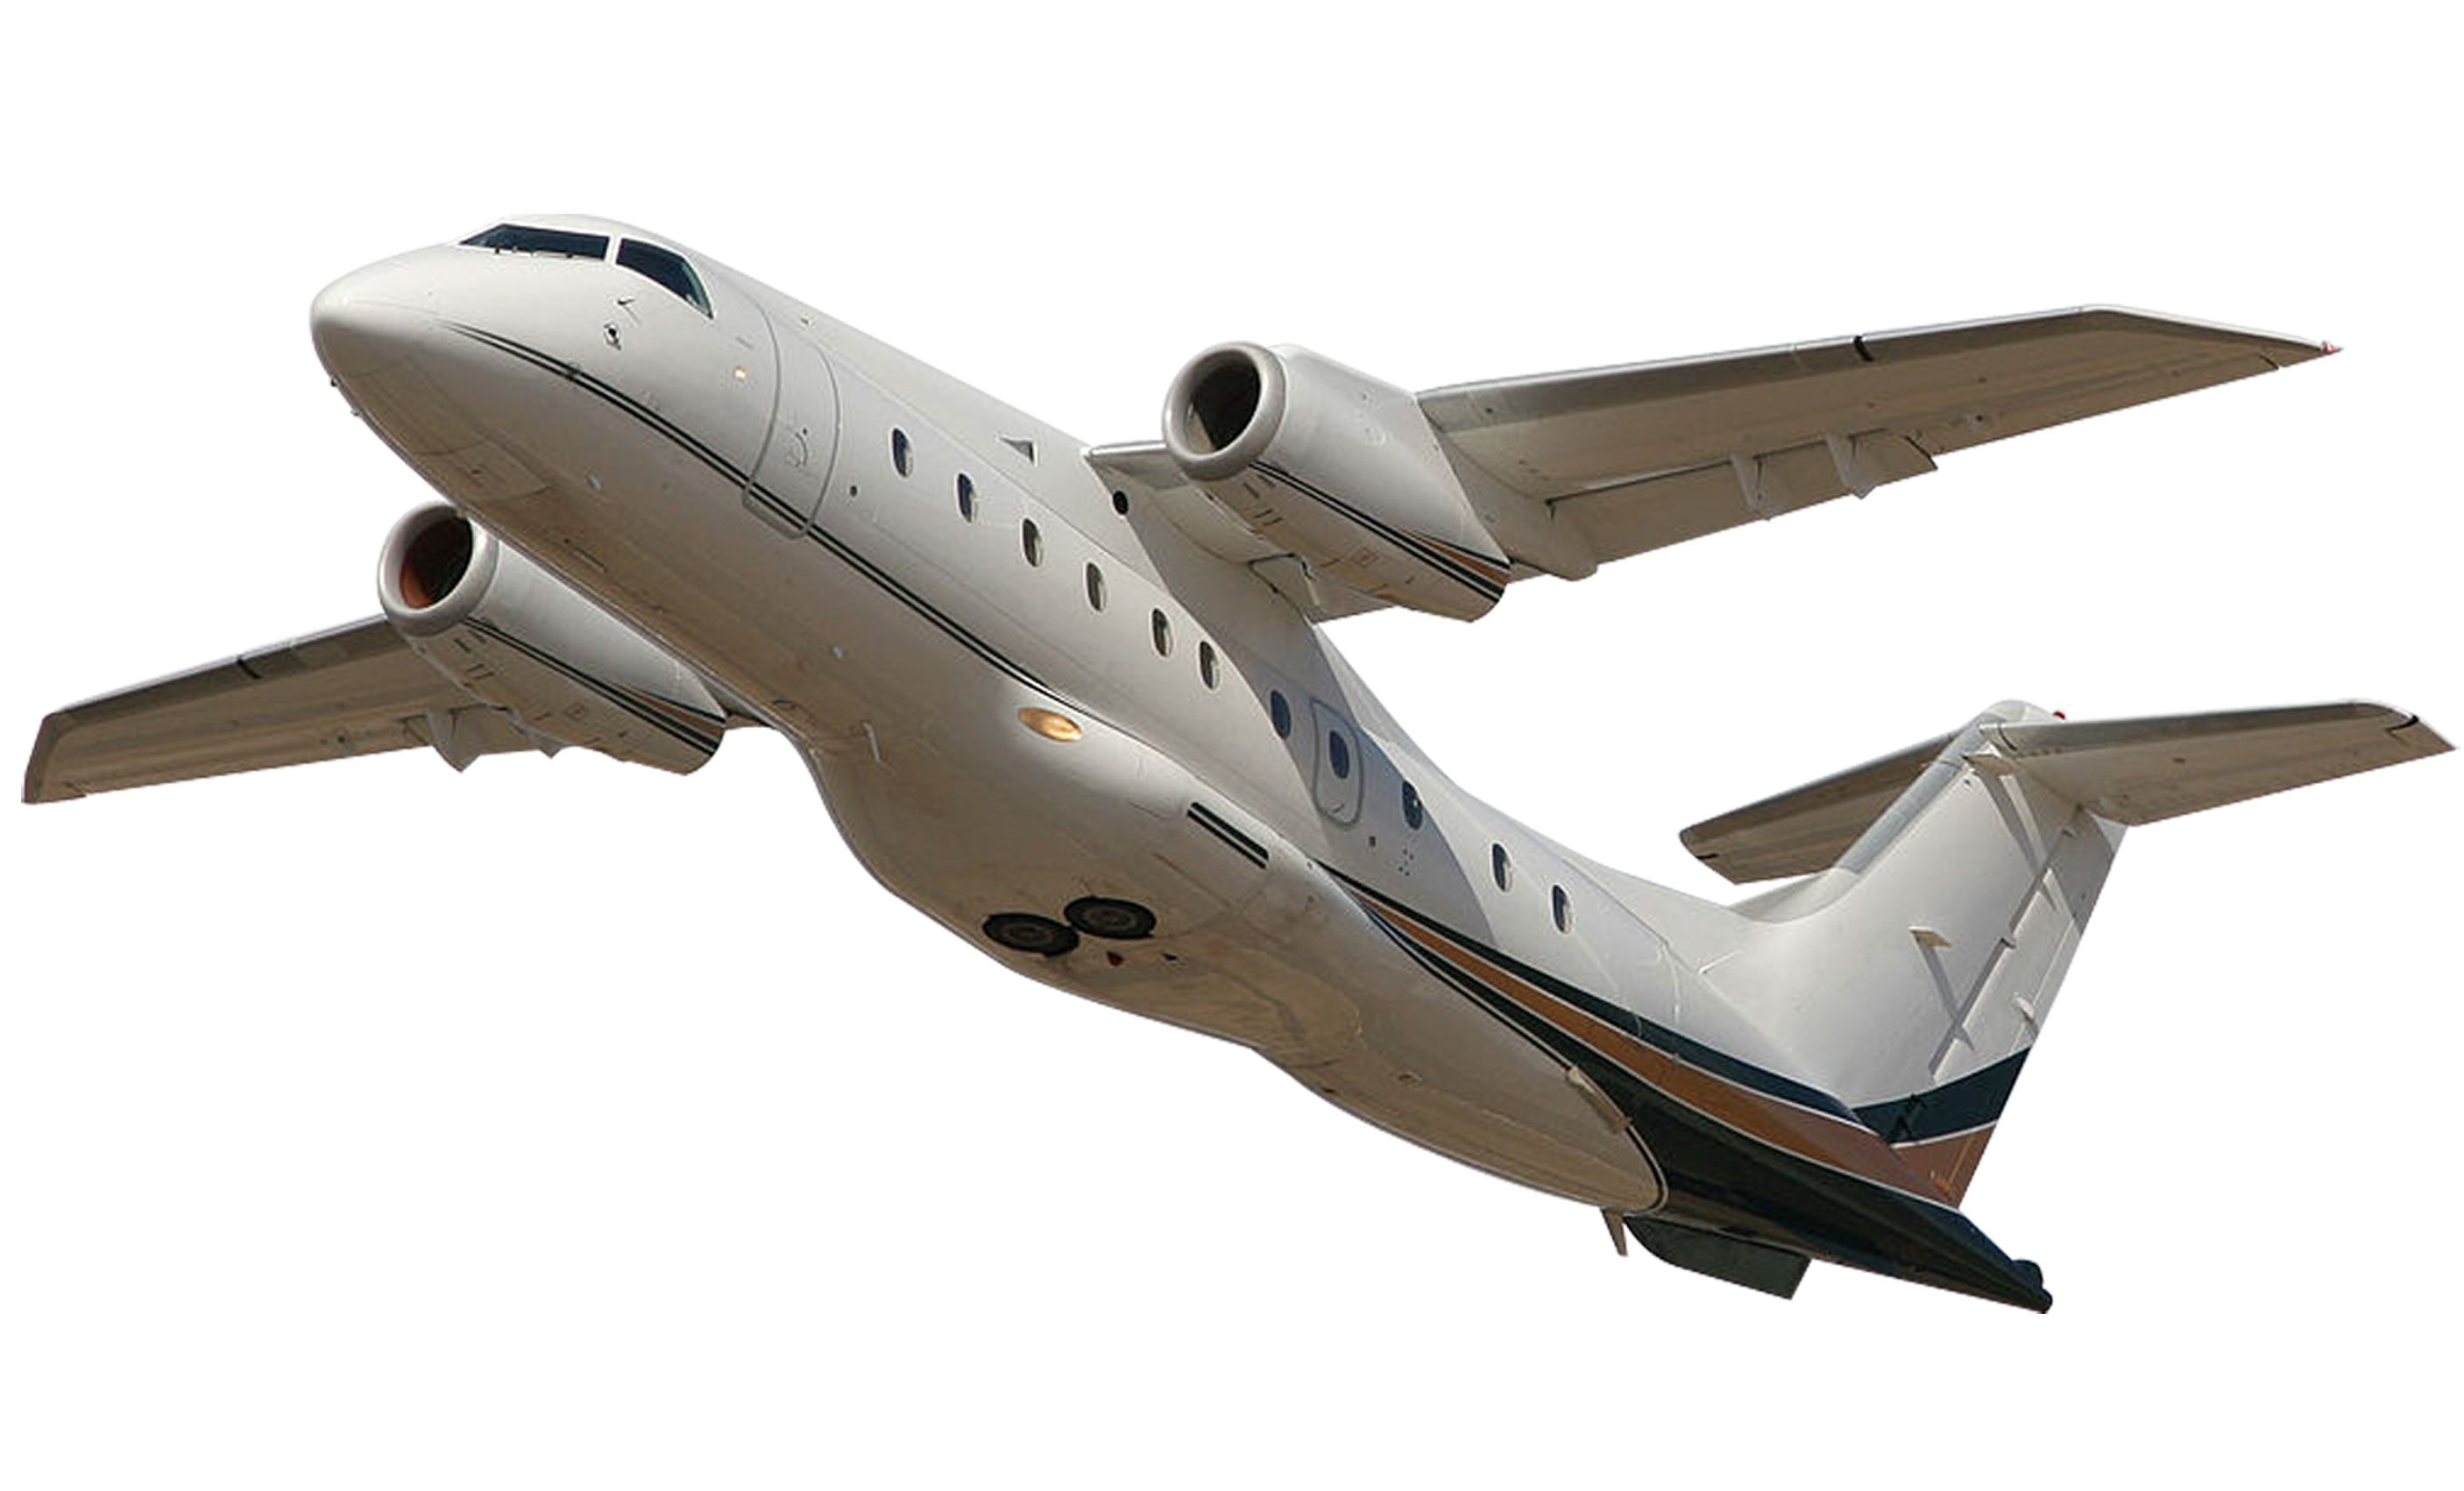 Plane flying png. Planes images free download